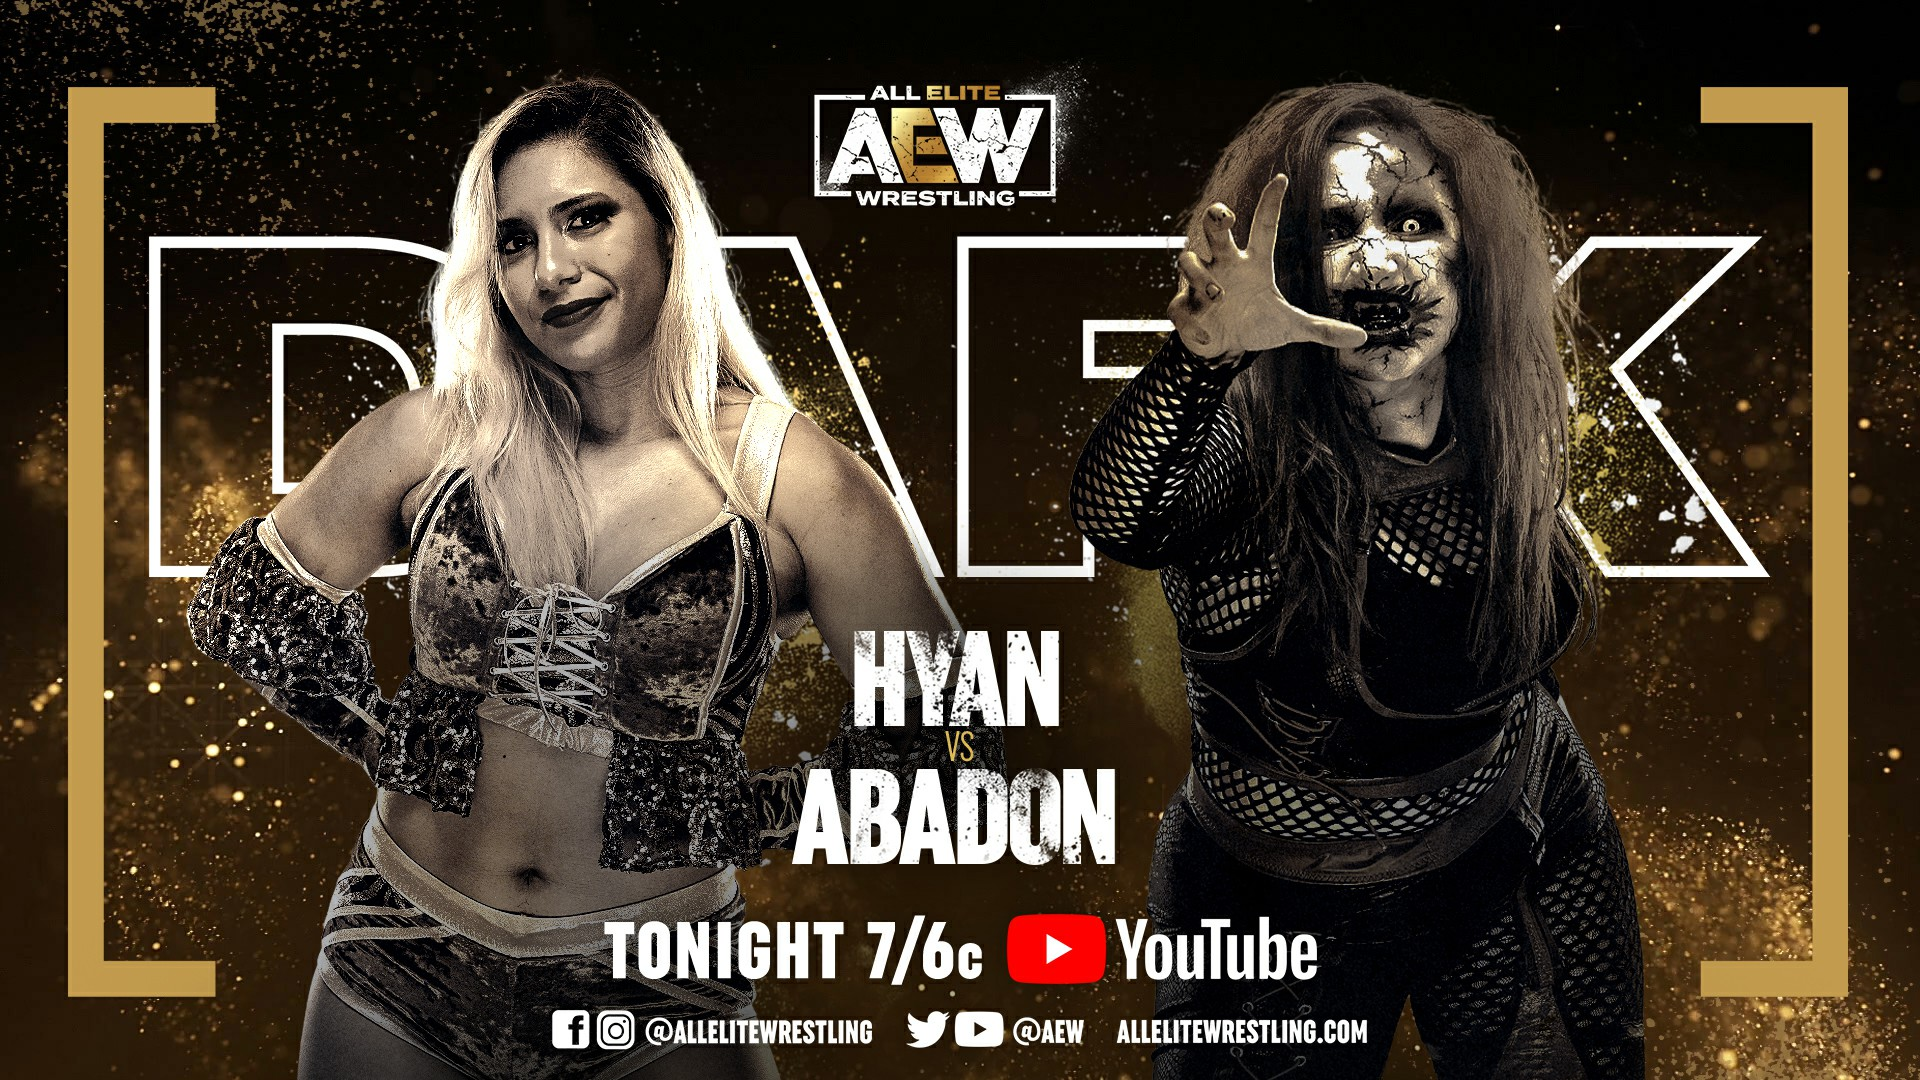 Hyan and Holidead scheduled to make their AEW debuts on Dark